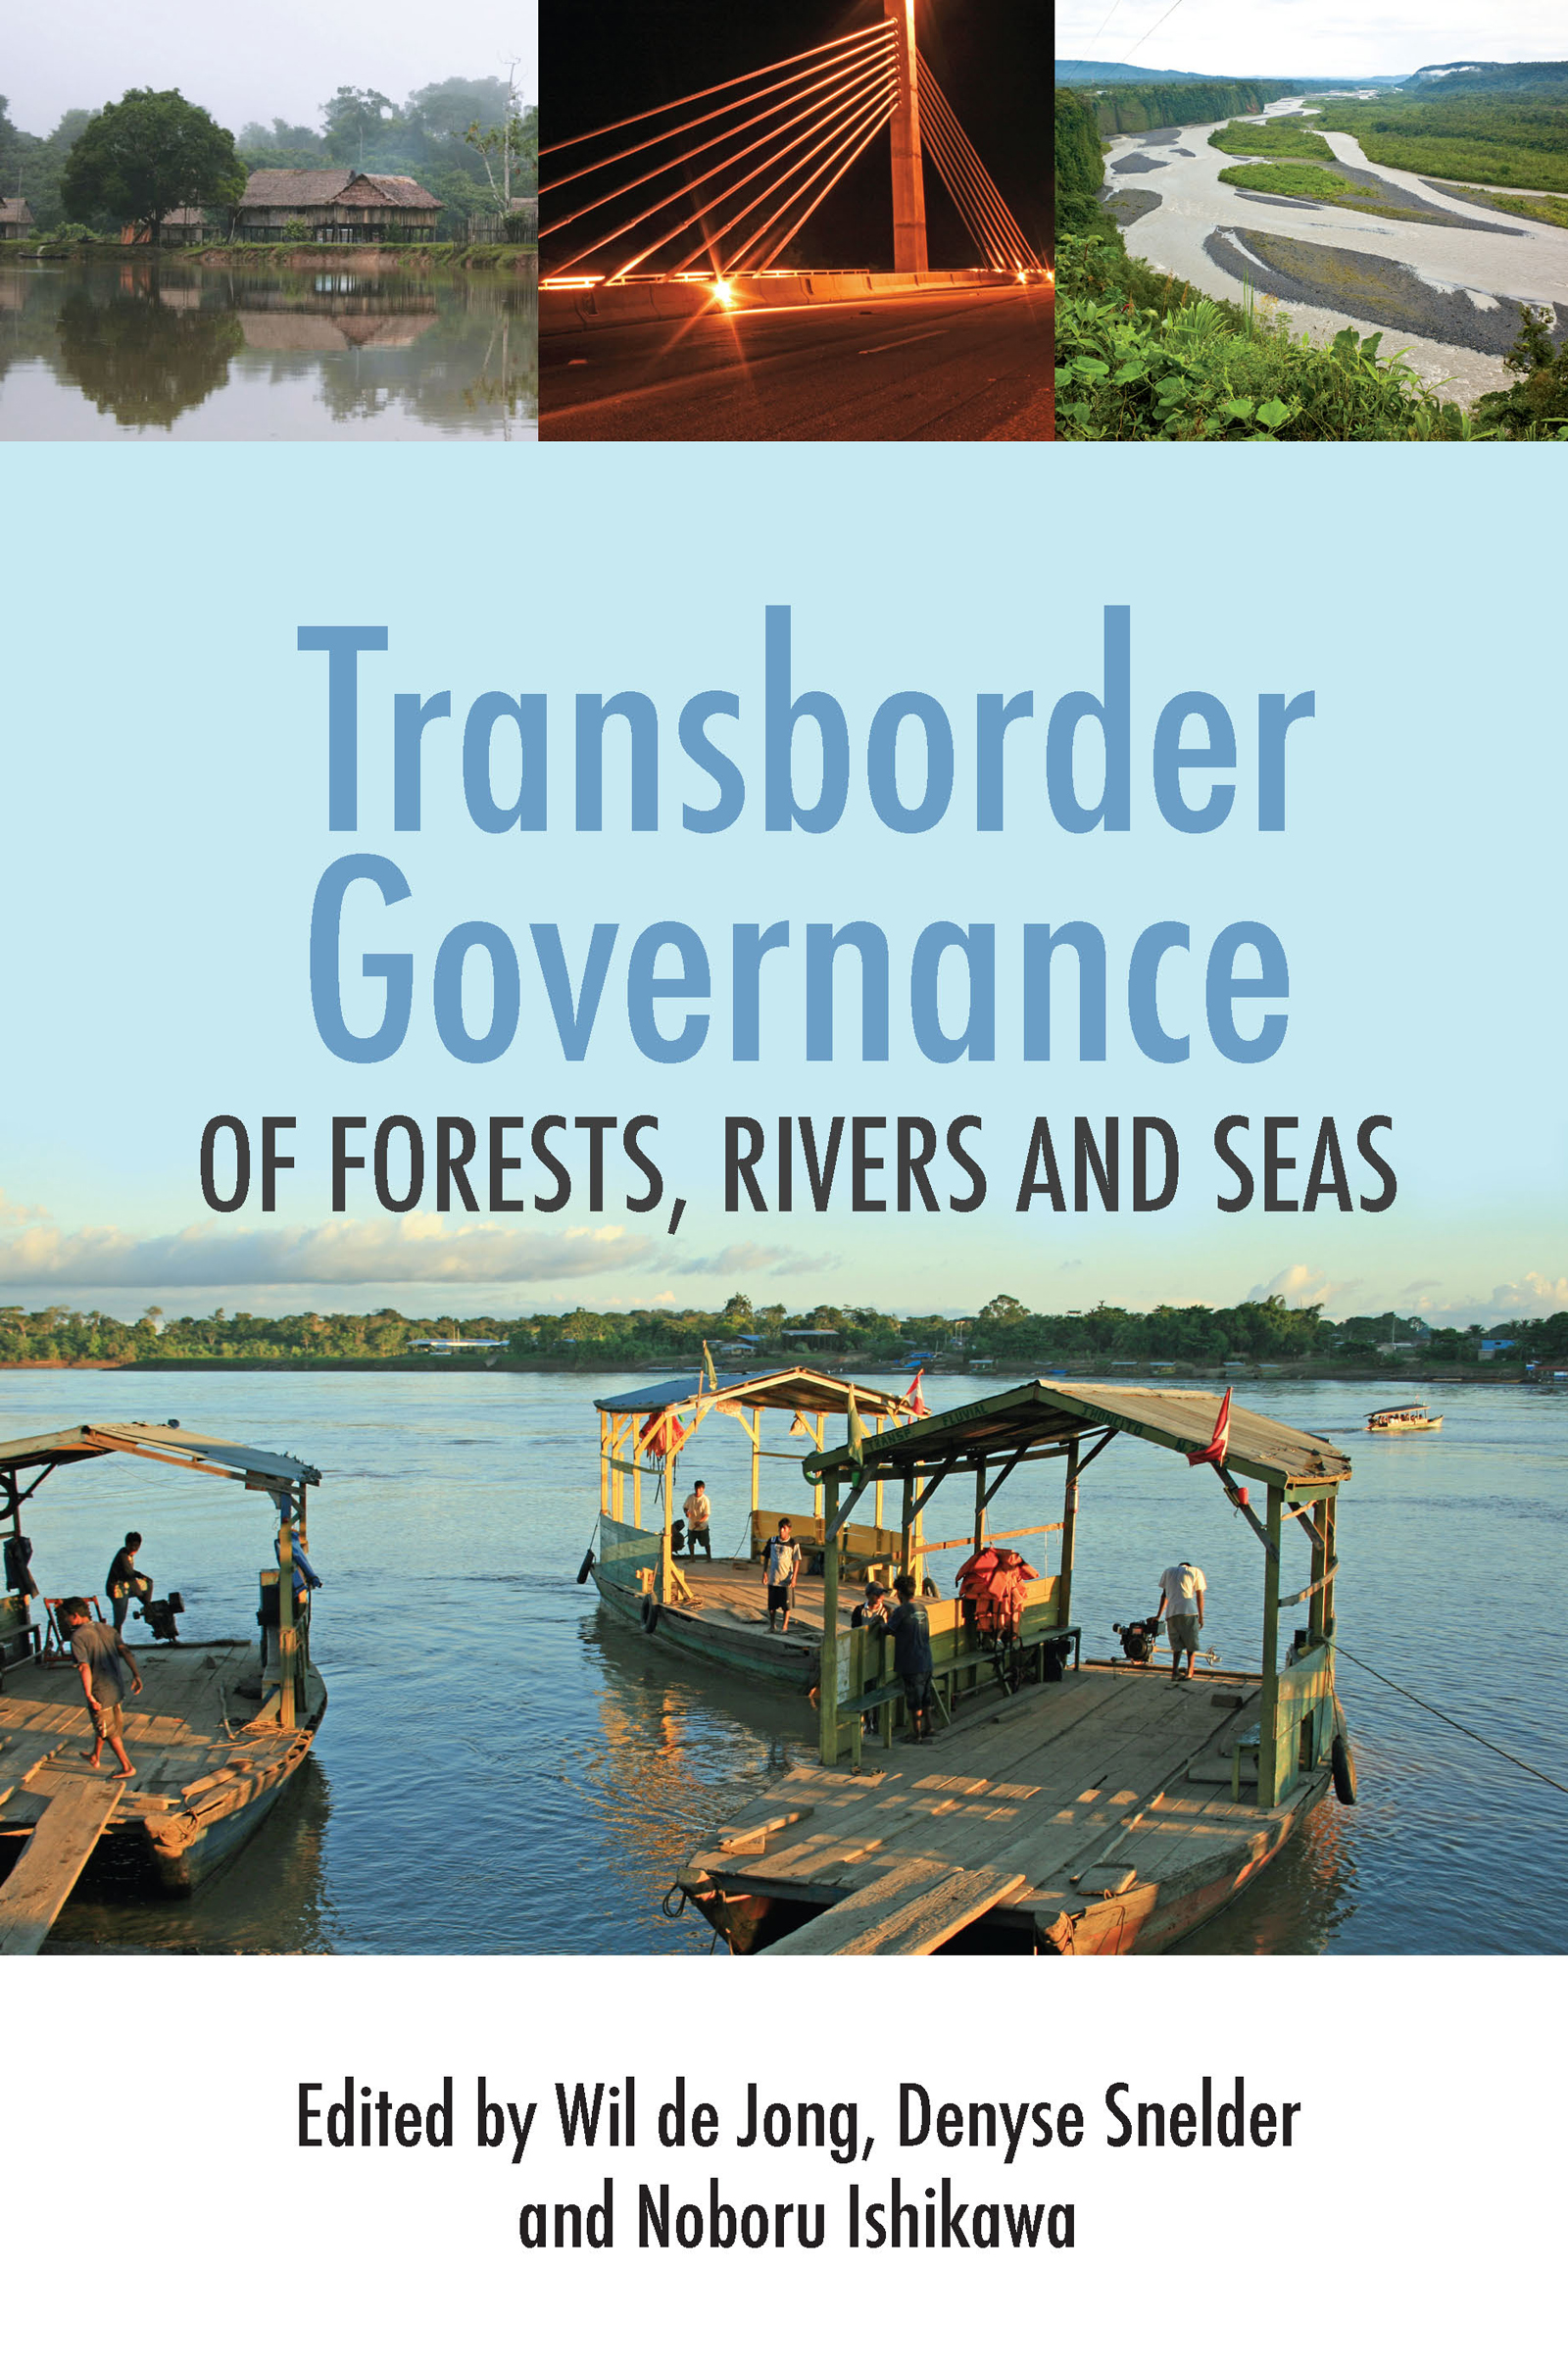 Transborder Governance of Forests, Rivers and Seas book cover